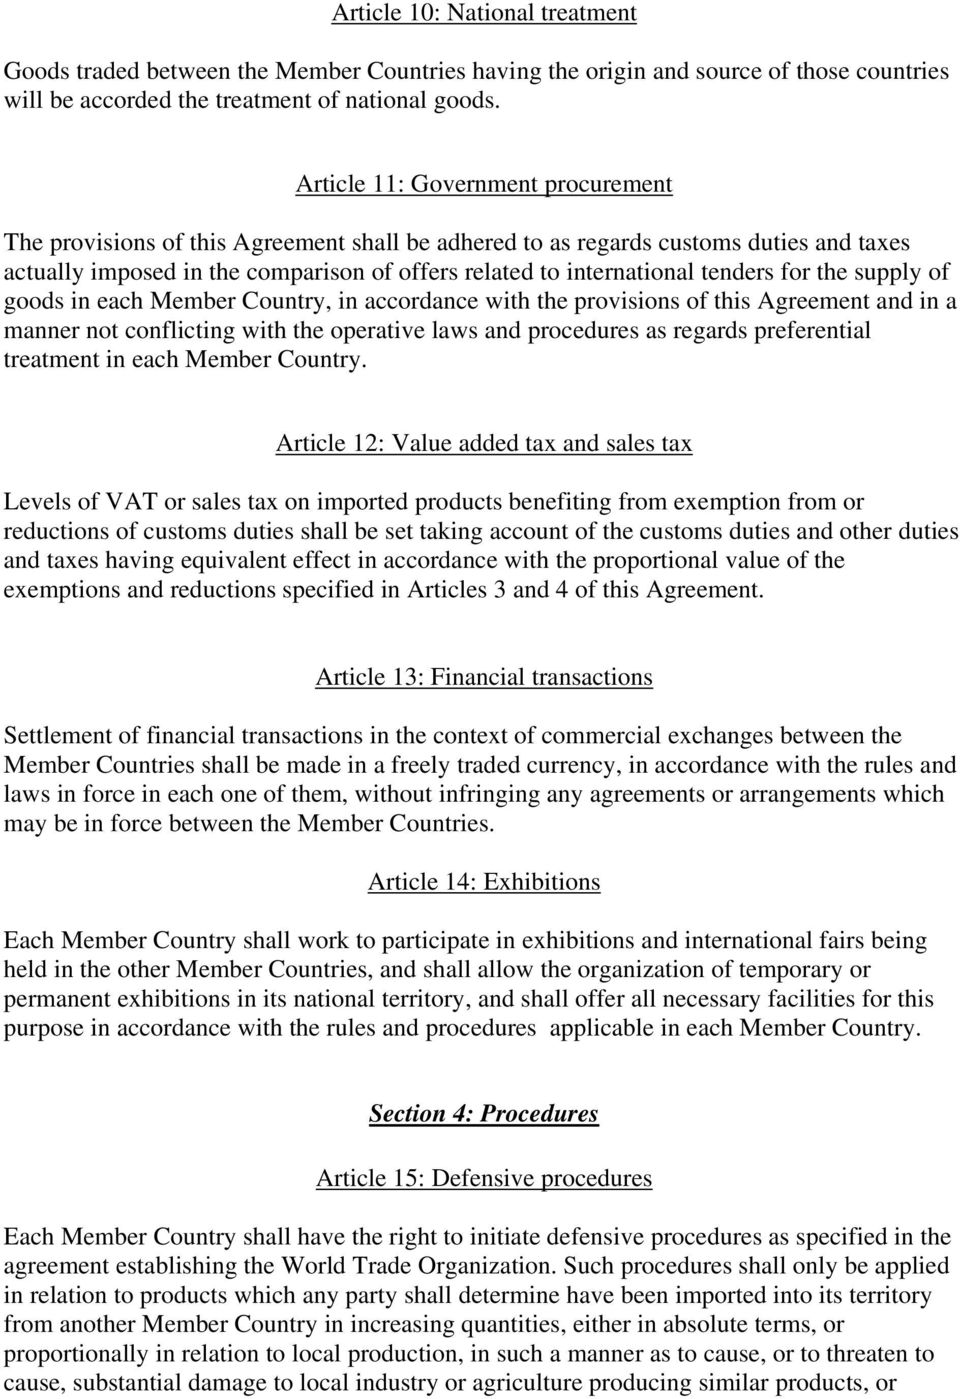 tenders for the supply of goods in each Member Country, in accordance with the provisions of this Agreement and in a manner not conflicting with the operative laws and procedures as regards